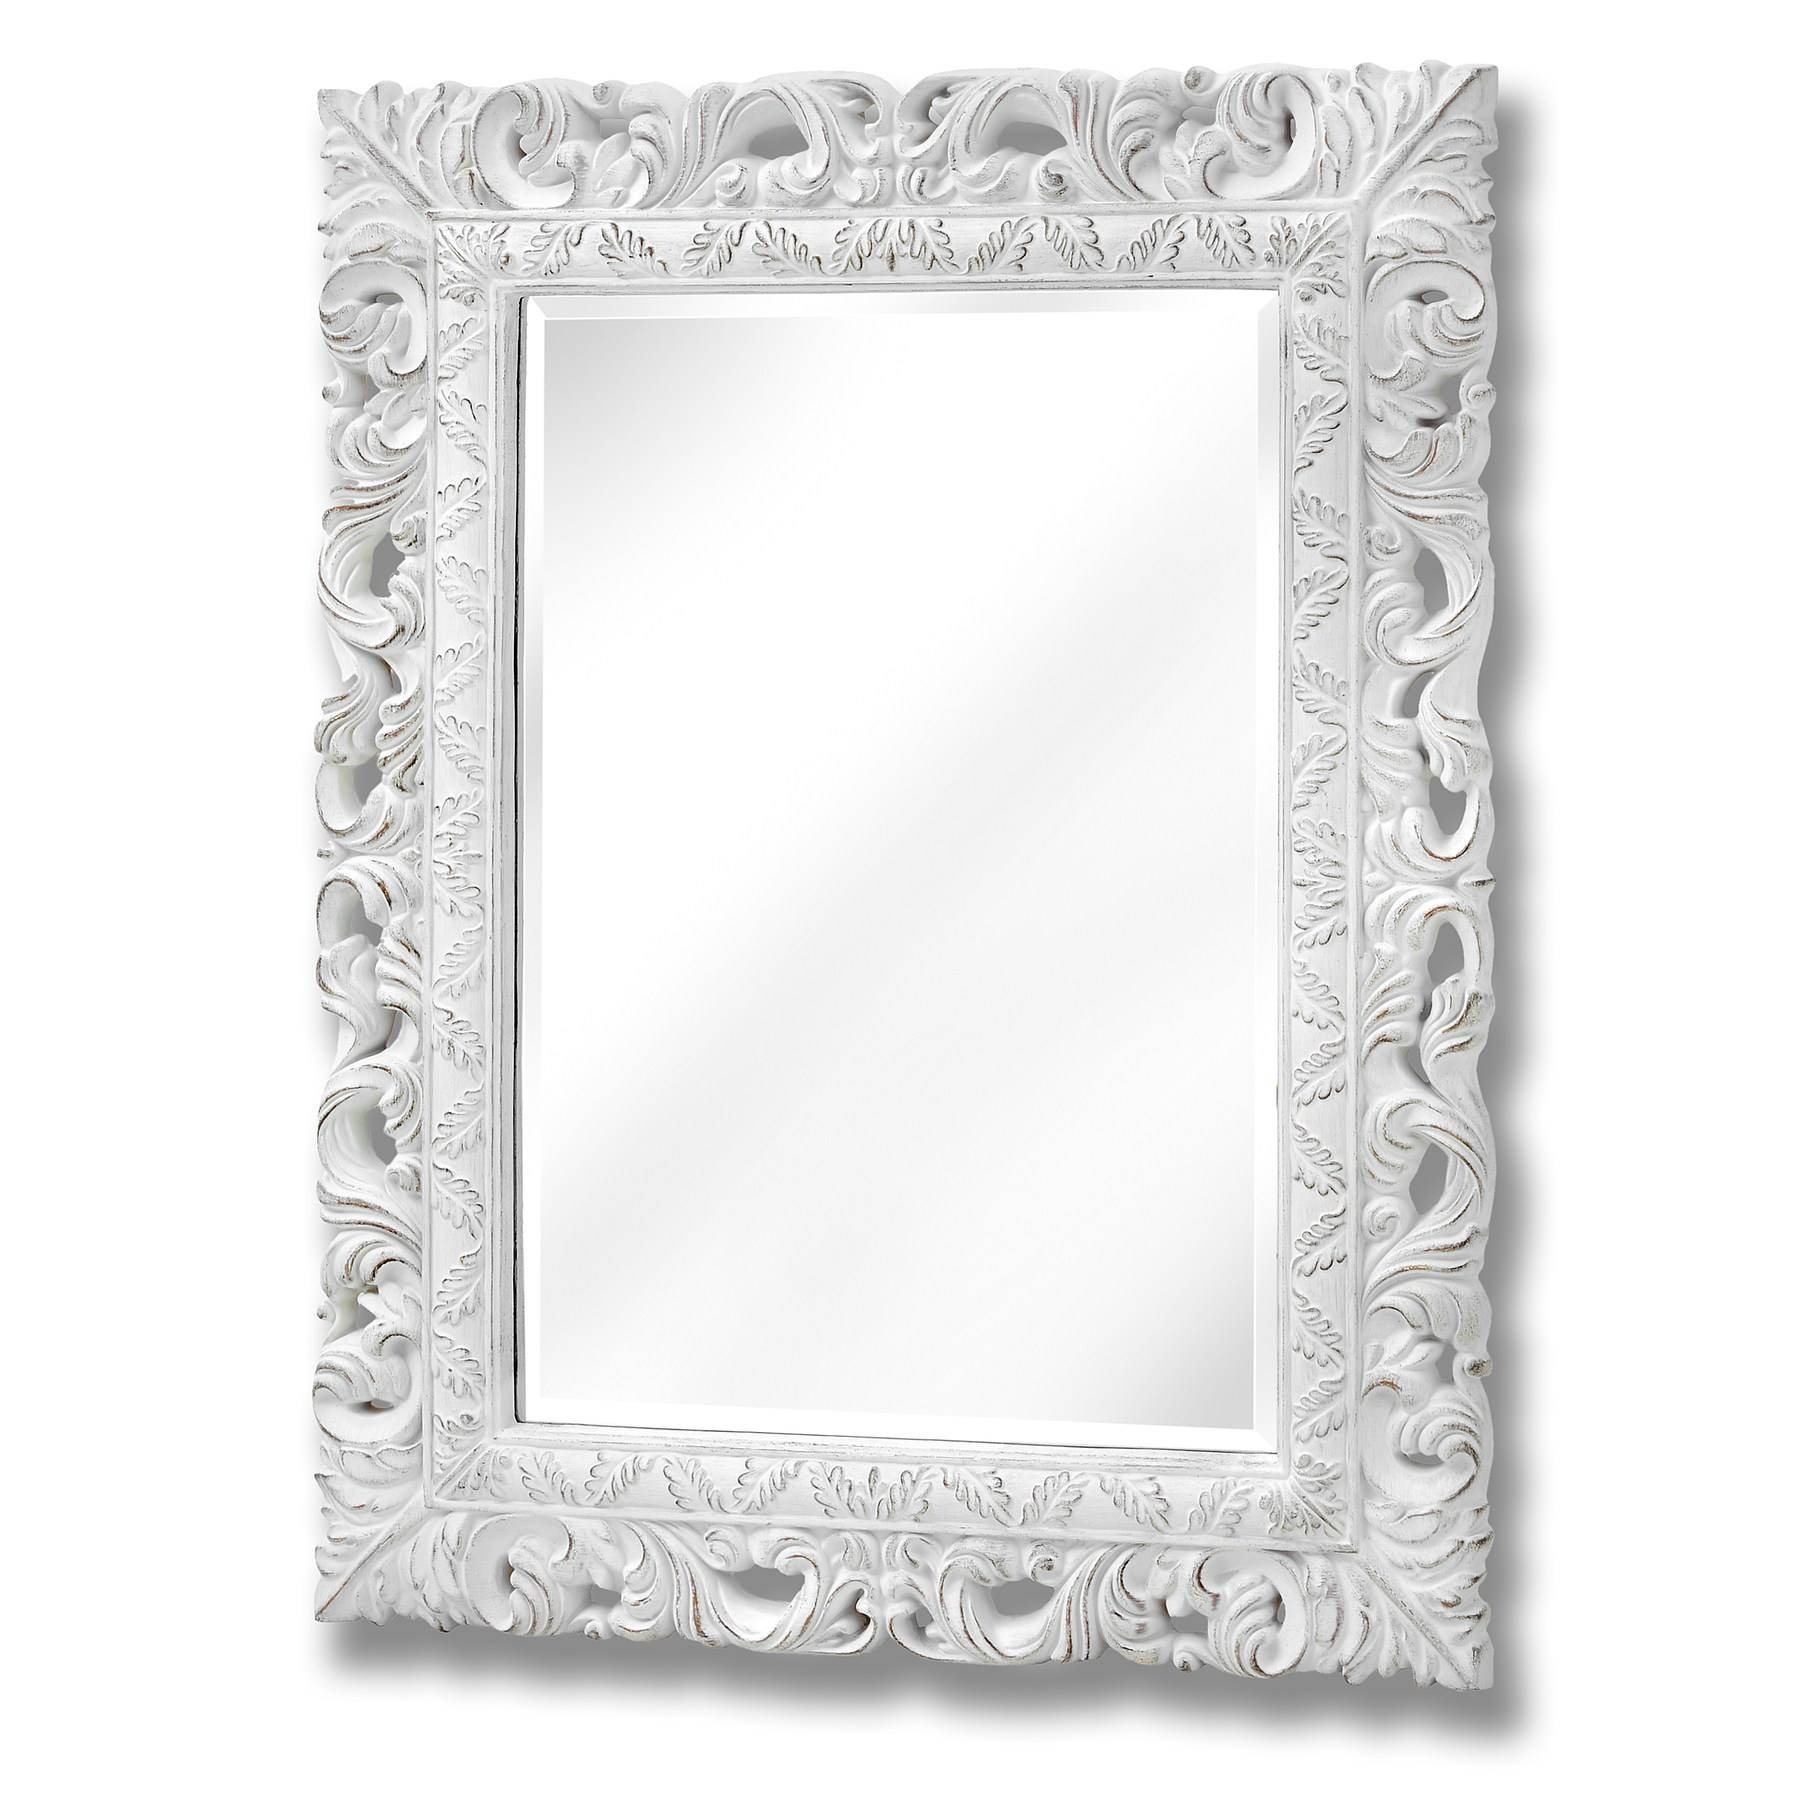 Antique White Ornate Leaf Wall Mirror | From Baytree Interiors within Antique Ornate Mirrors (Image 10 of 25)